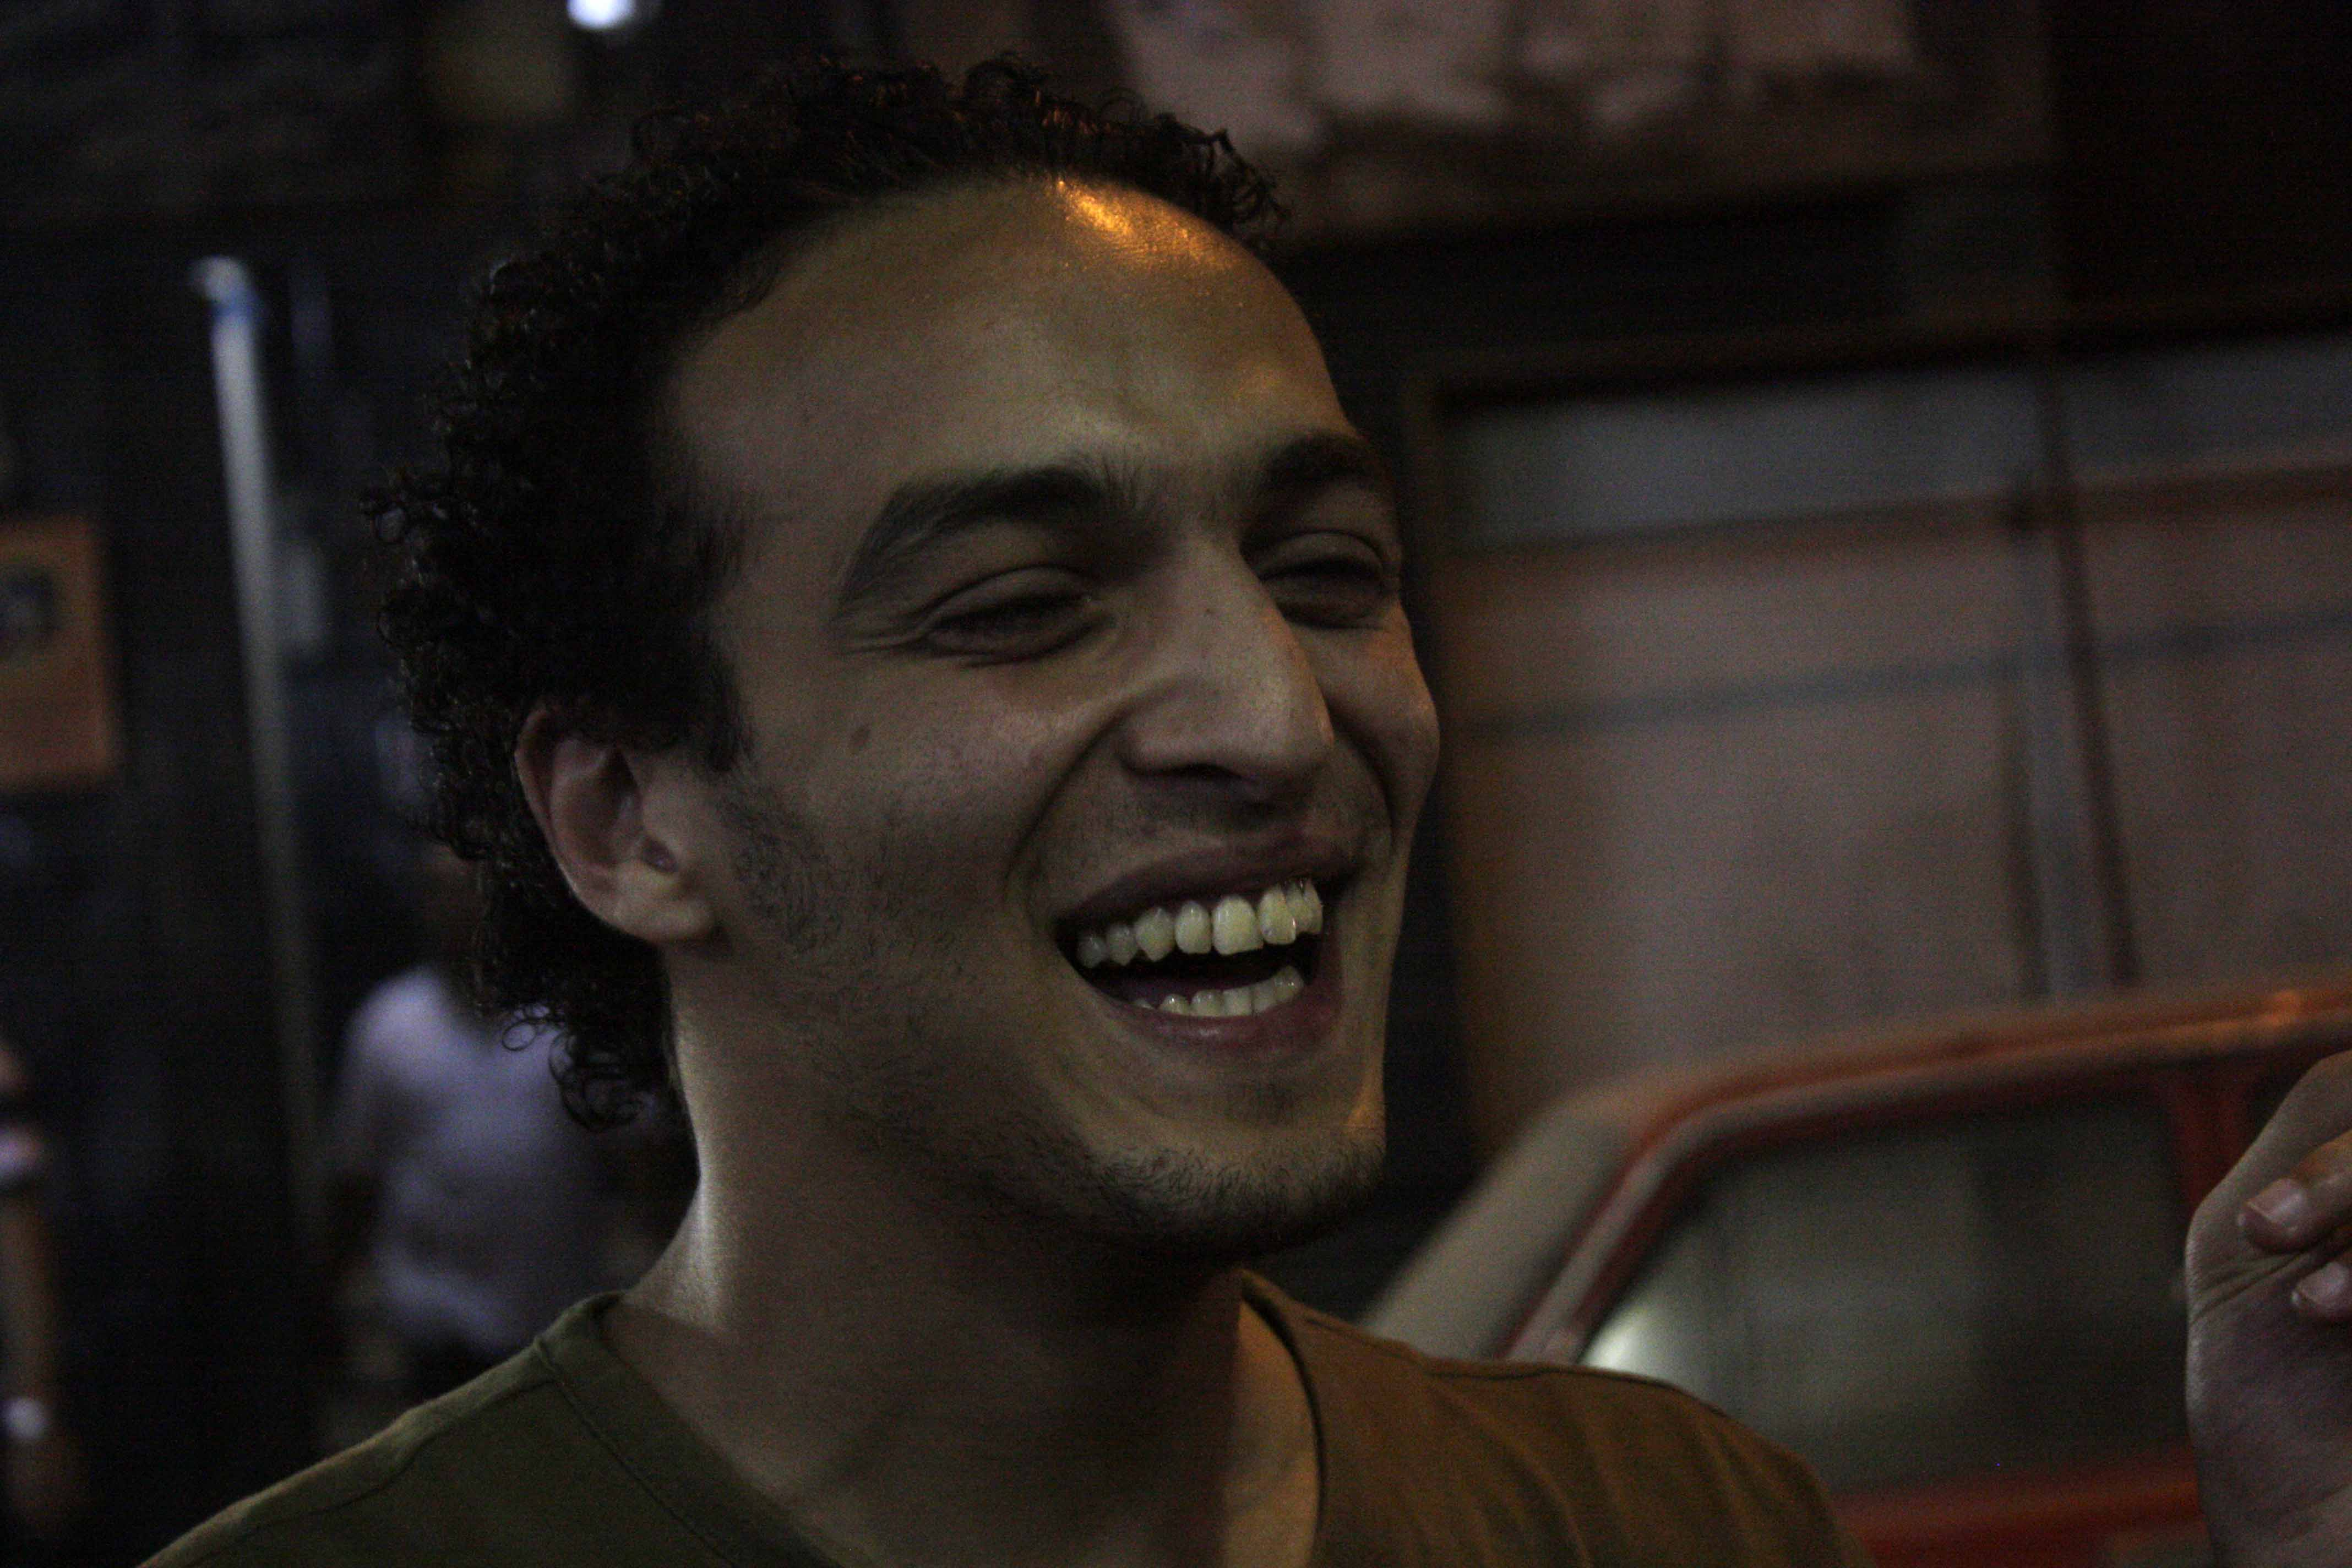 Photojournalist Mahmoud Abou Zeid, known as Shawkan, was arrested on Aug. 14, 2013, as he was taking pictures of the violent dispersal of the Rabaa al-Adaweya sit-in.